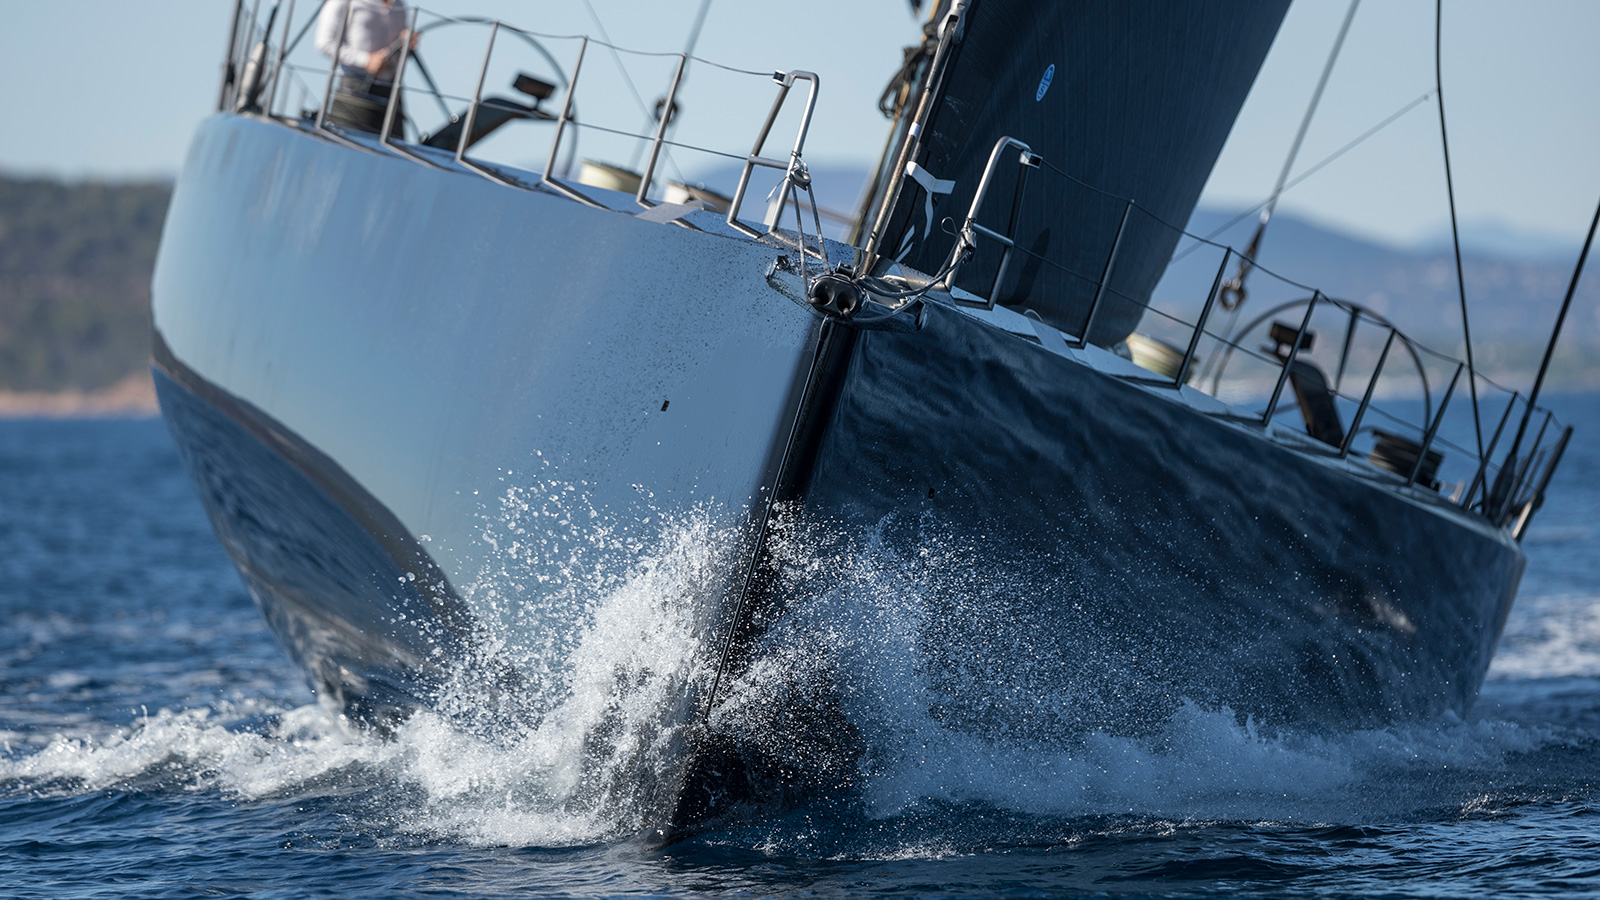 bow-view-of-the-wallycento-sailing-superyacht-tango-credit-gilles-martin-raget